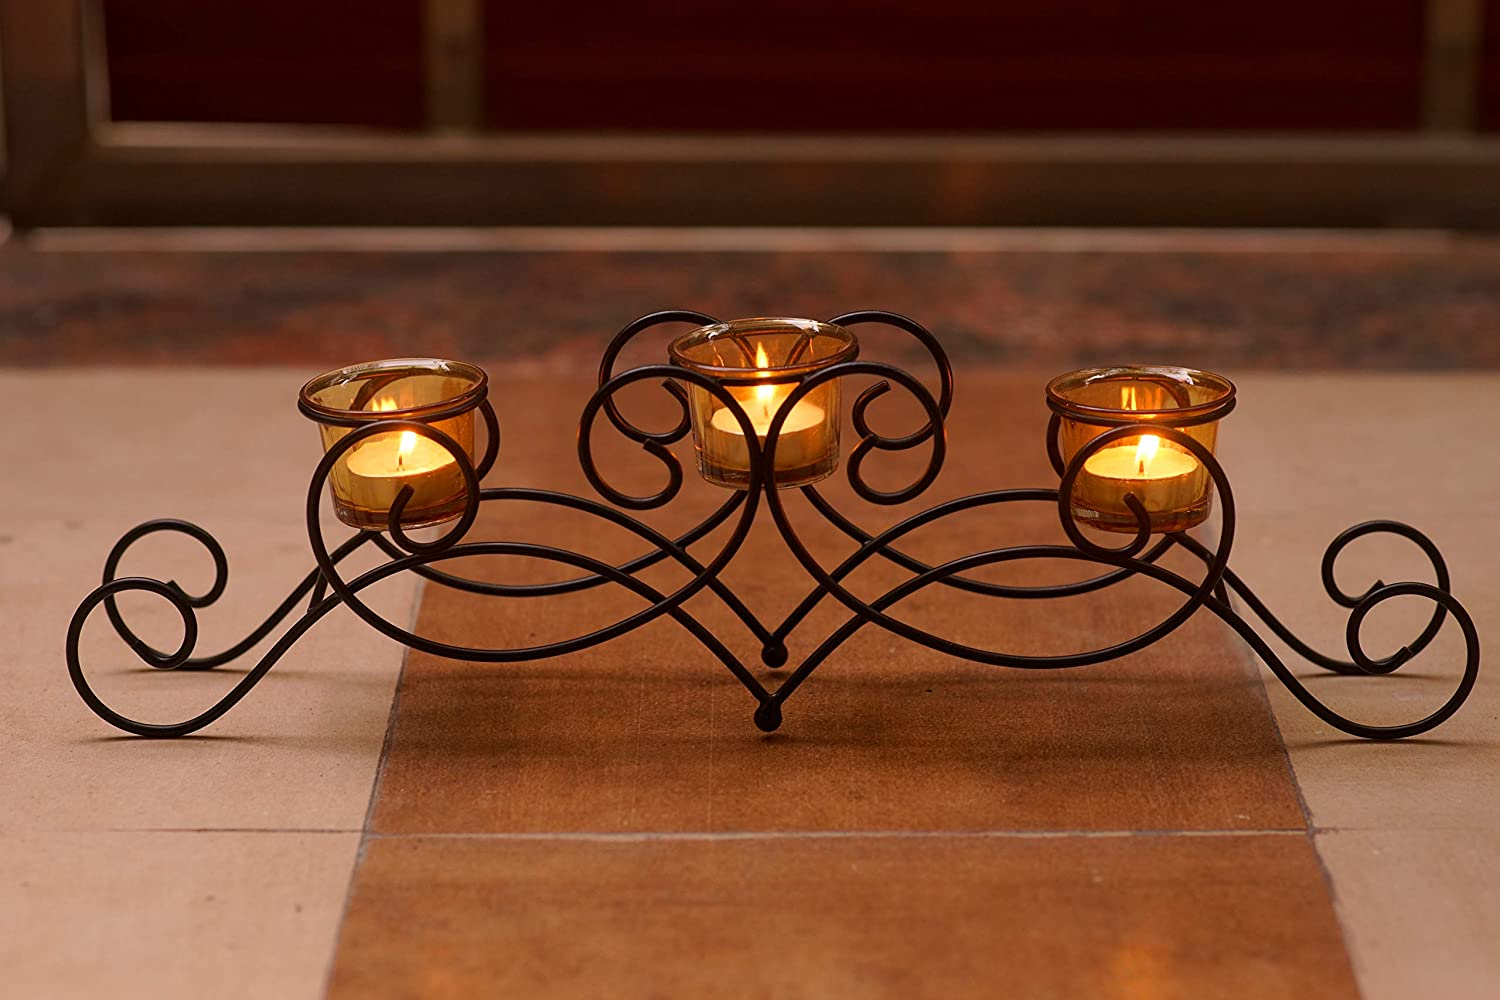 MyArtsyHouse Tealight Holder Tealight Candle Stand for Home Decor Centerpiece Tabletop Showpiece Decoration Metal Scroll Design (Black 3)